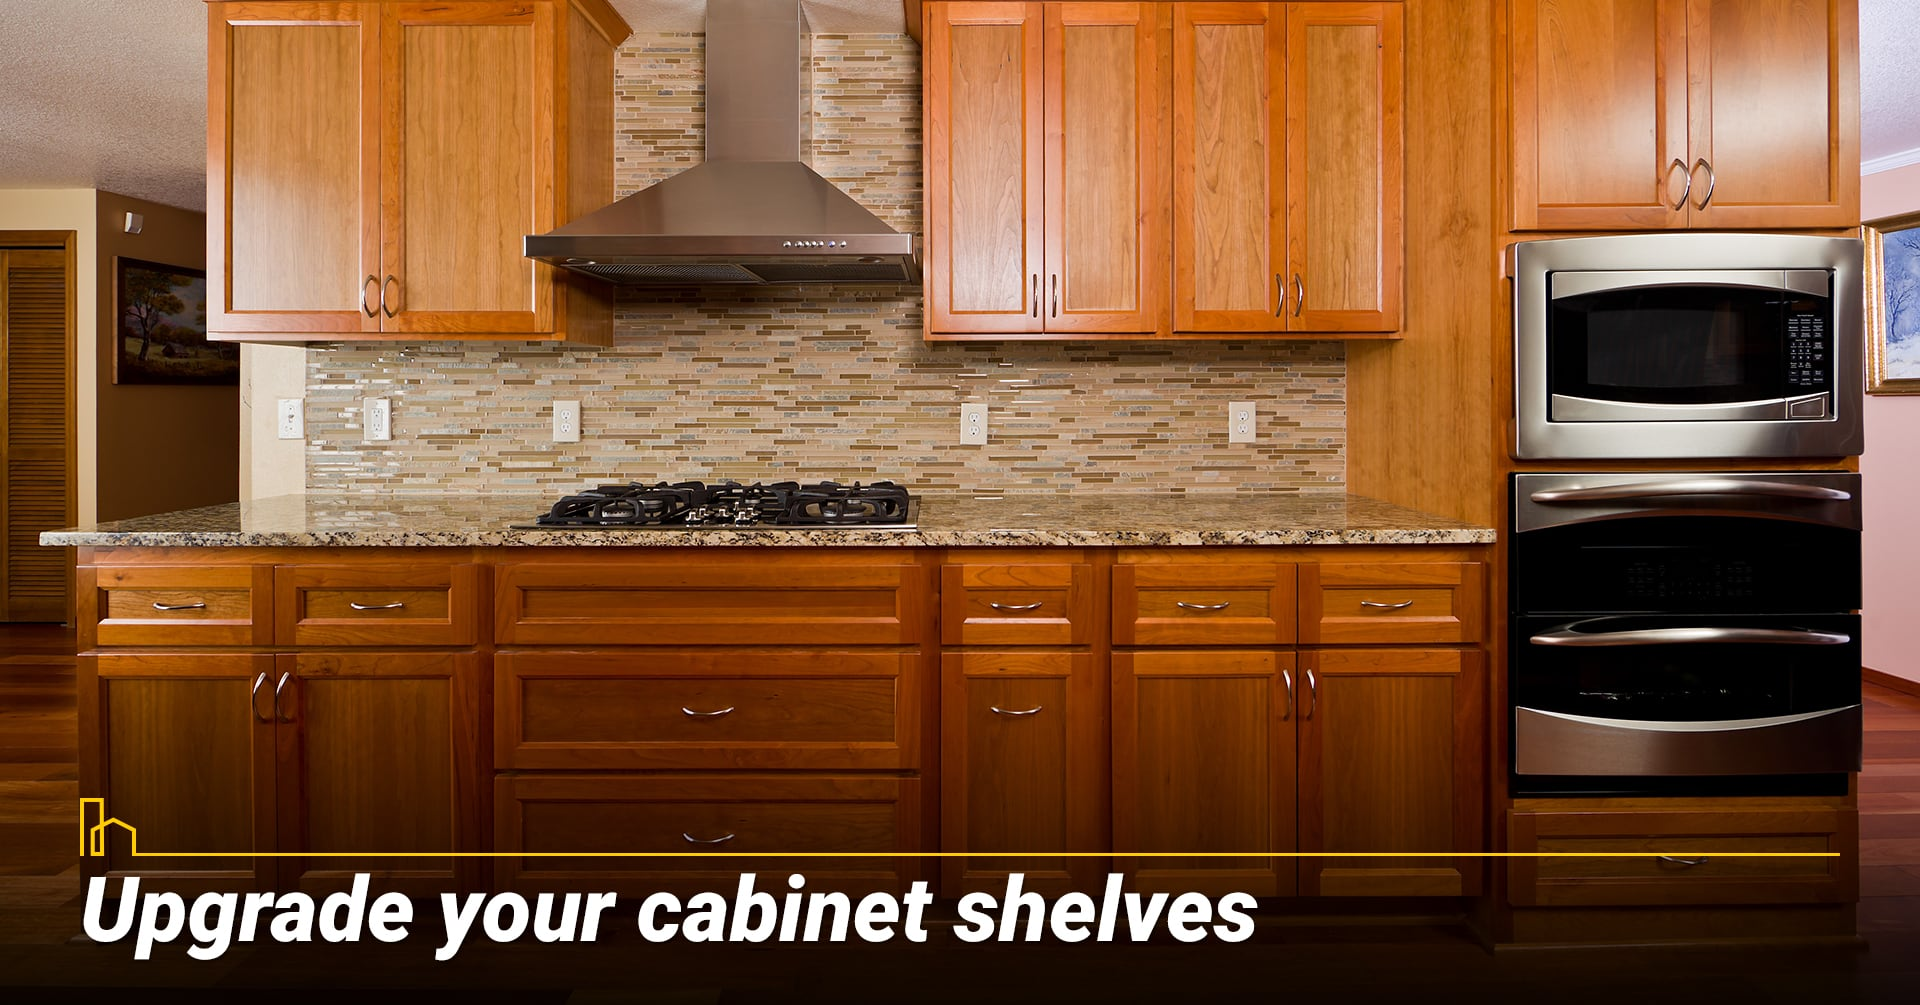 Upgrade your cabinet shelves, upgrade your kitchen